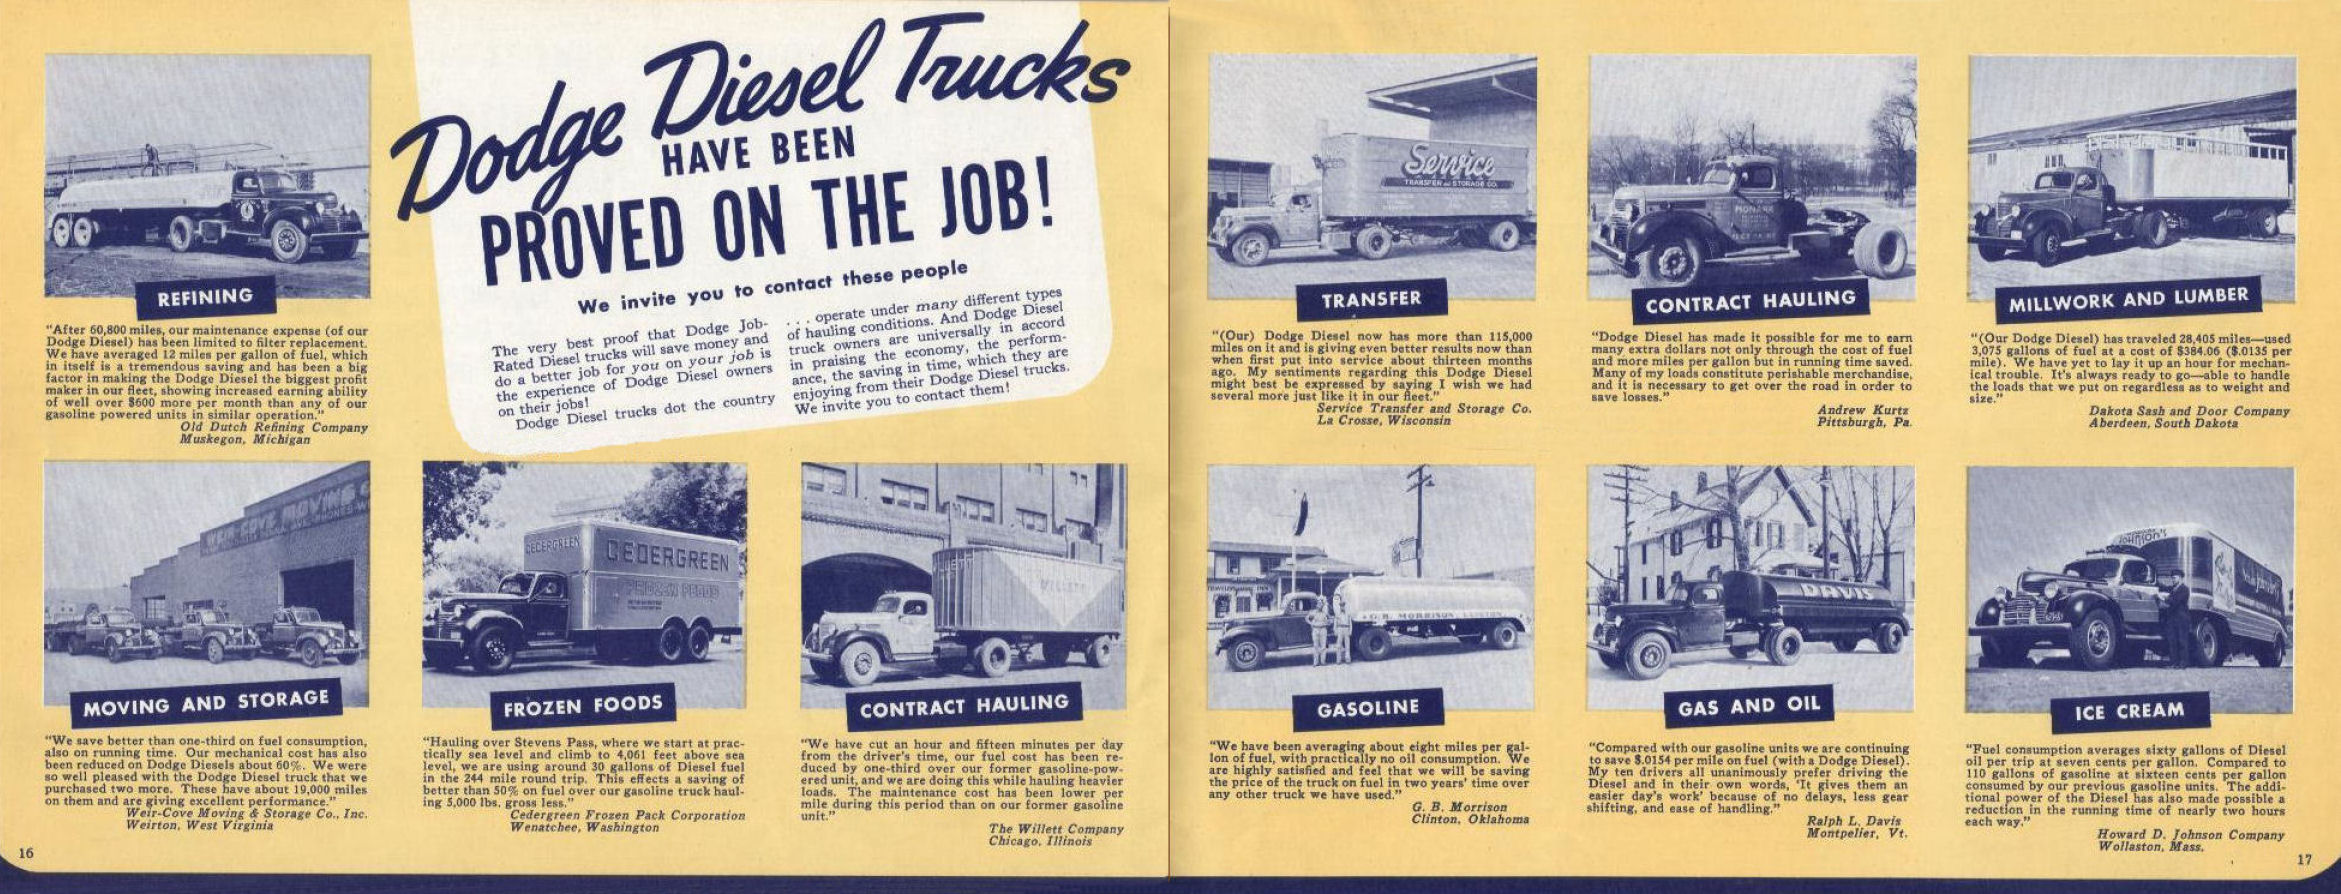 1941_Dodge_Diesel_HD_Trucks_Brochure-16-17.jpg